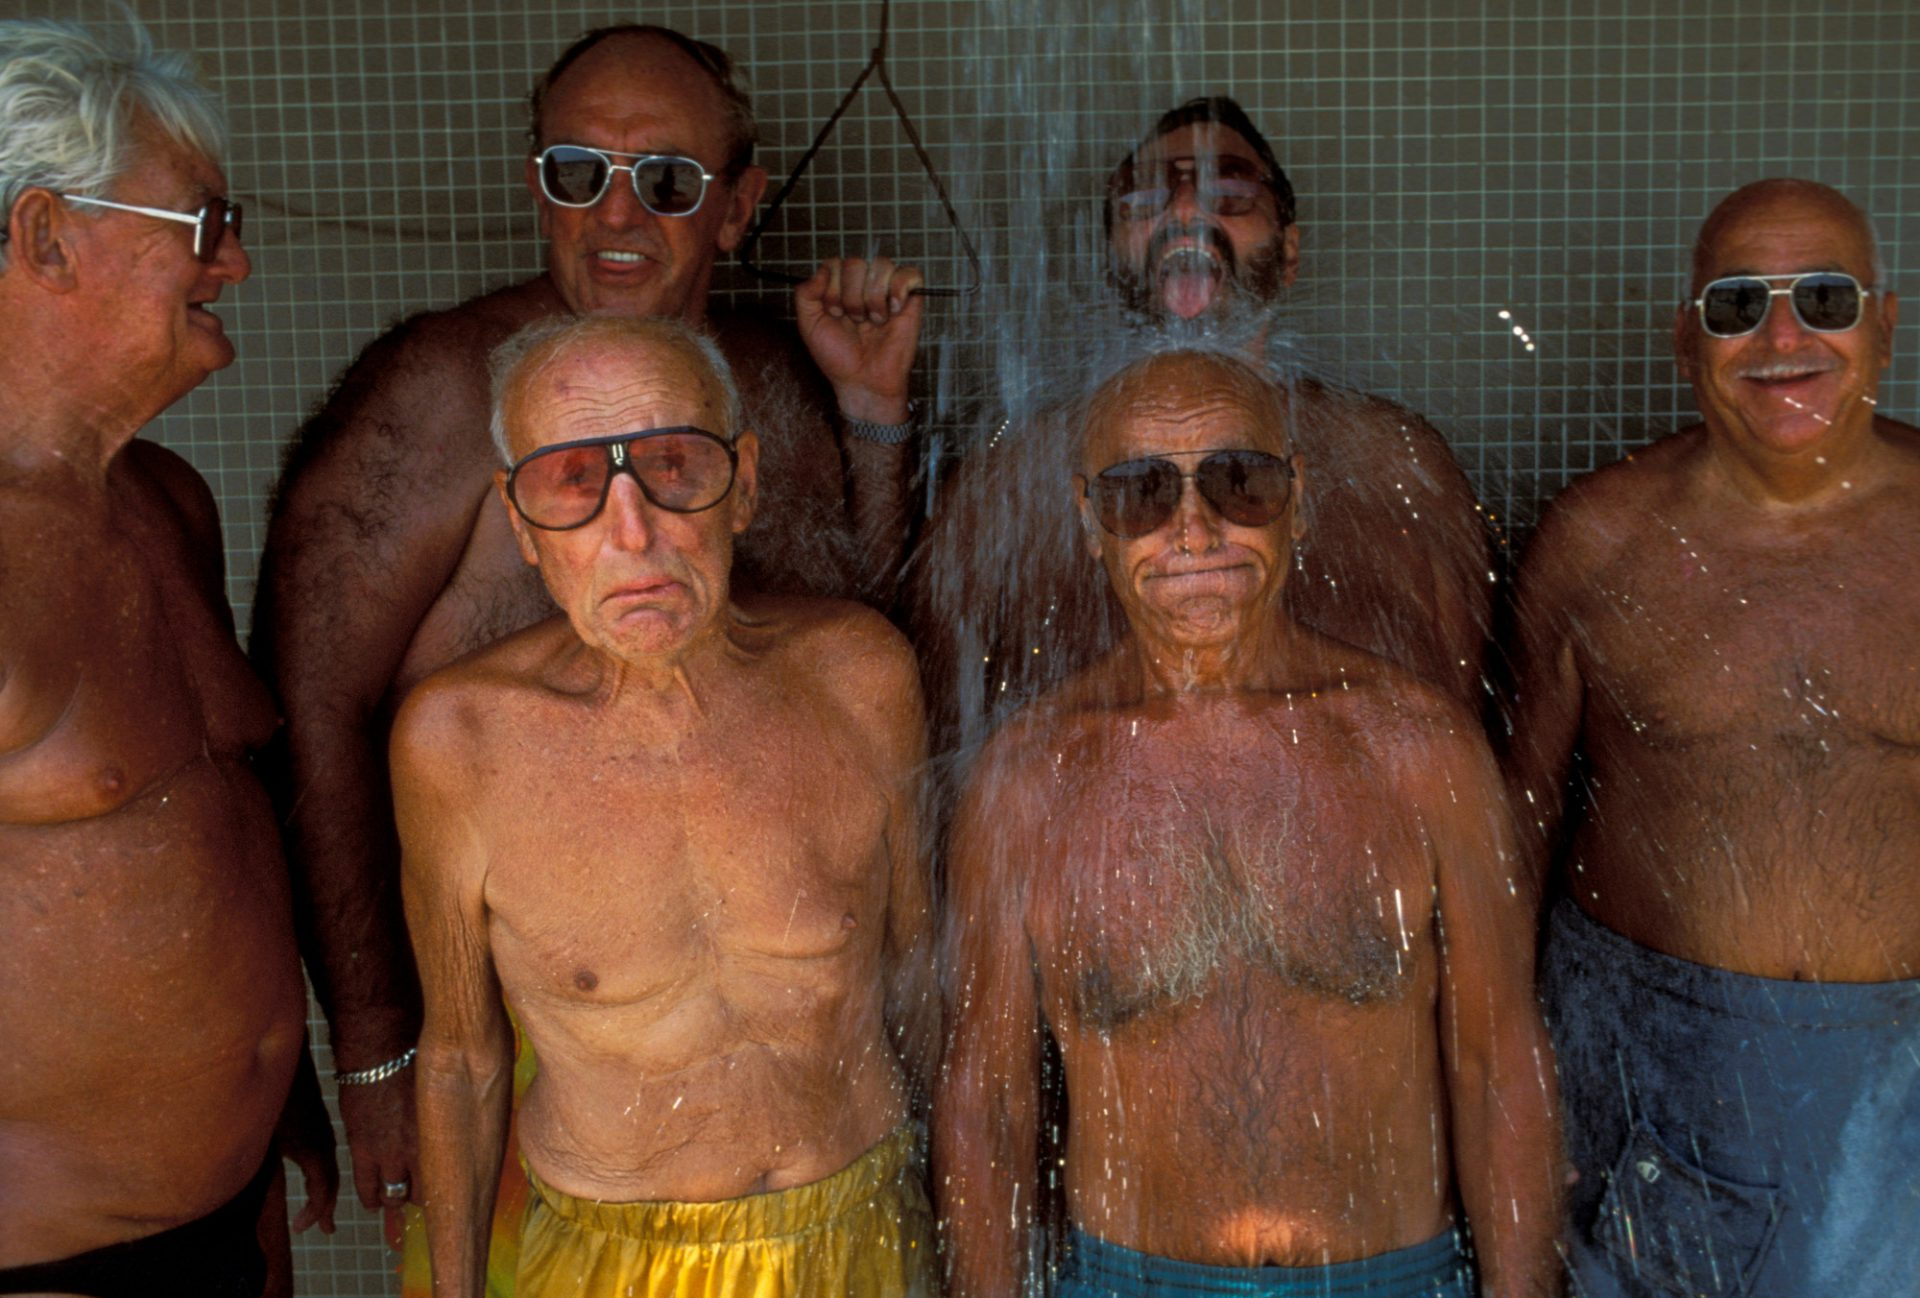 Photo: The Boston Brownies, so named from the tan resulting from the daily swims they take in Boston Harbor.